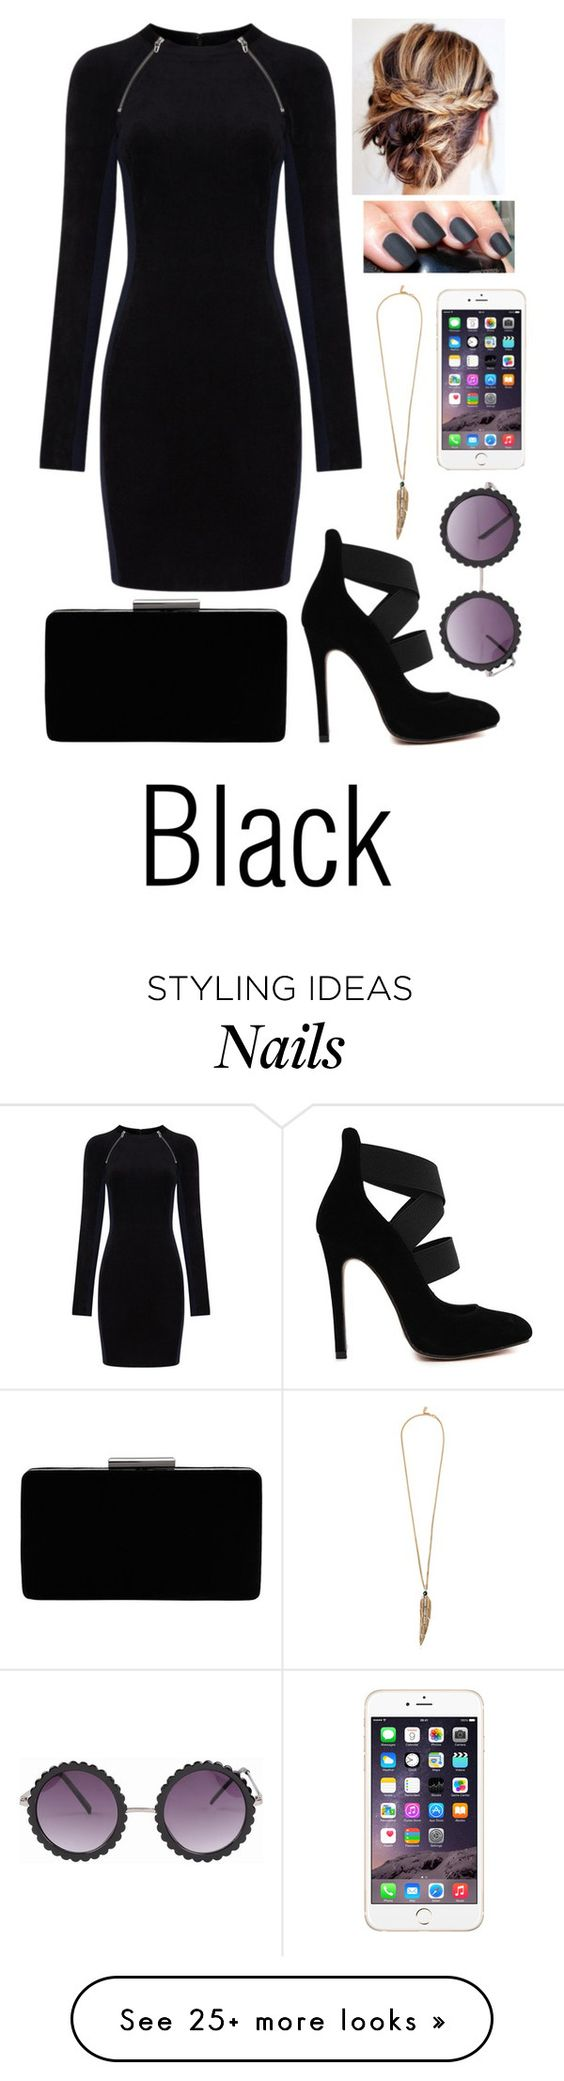 """Black"" by missingpearl on Polyvore featuring T By Alexander Wang, John Lewis and Roberto Cavalli:"